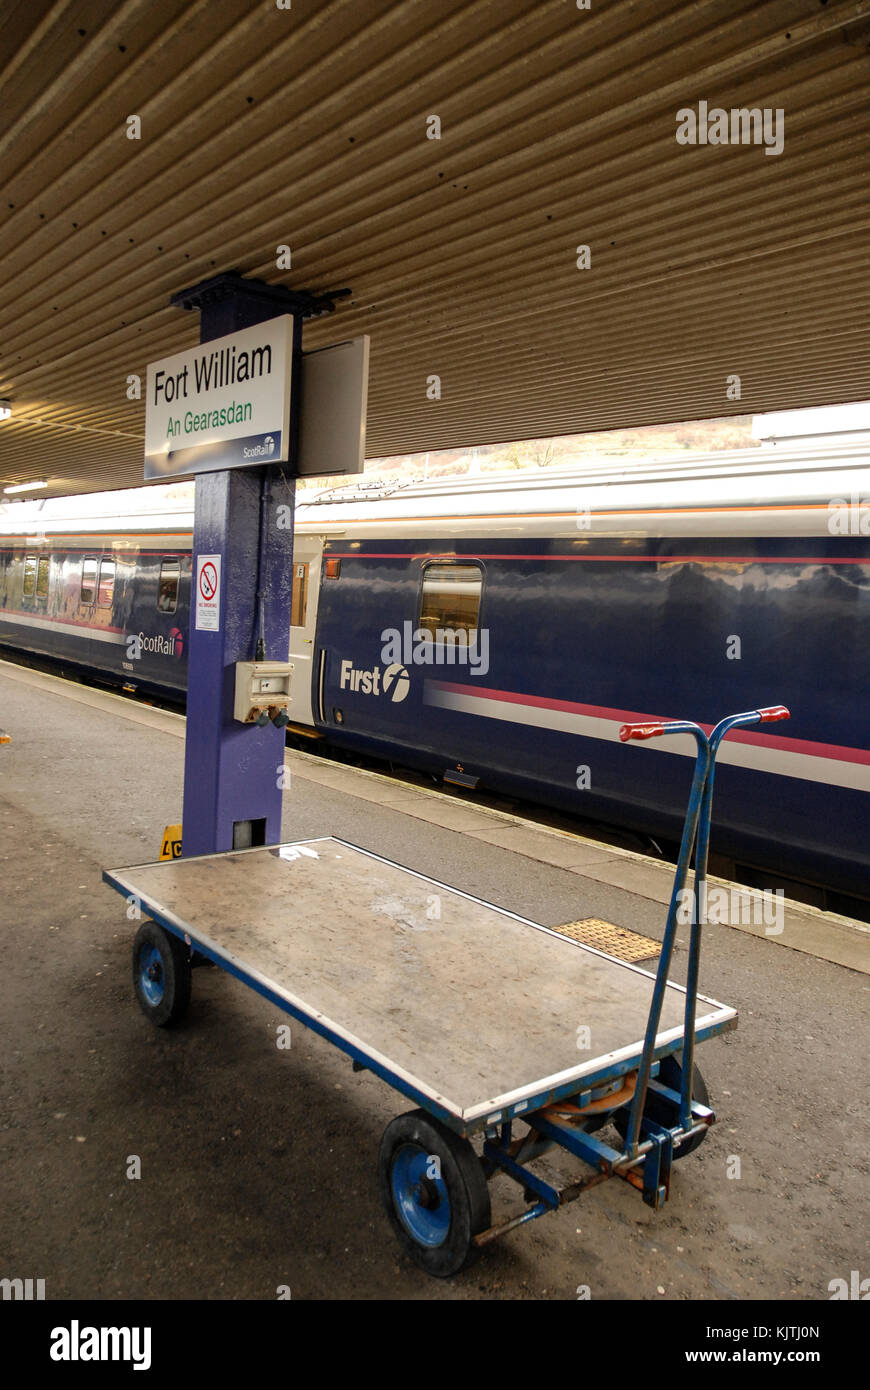 Fort William mainline rail station serving London with overnight sleepers. - Stock Image